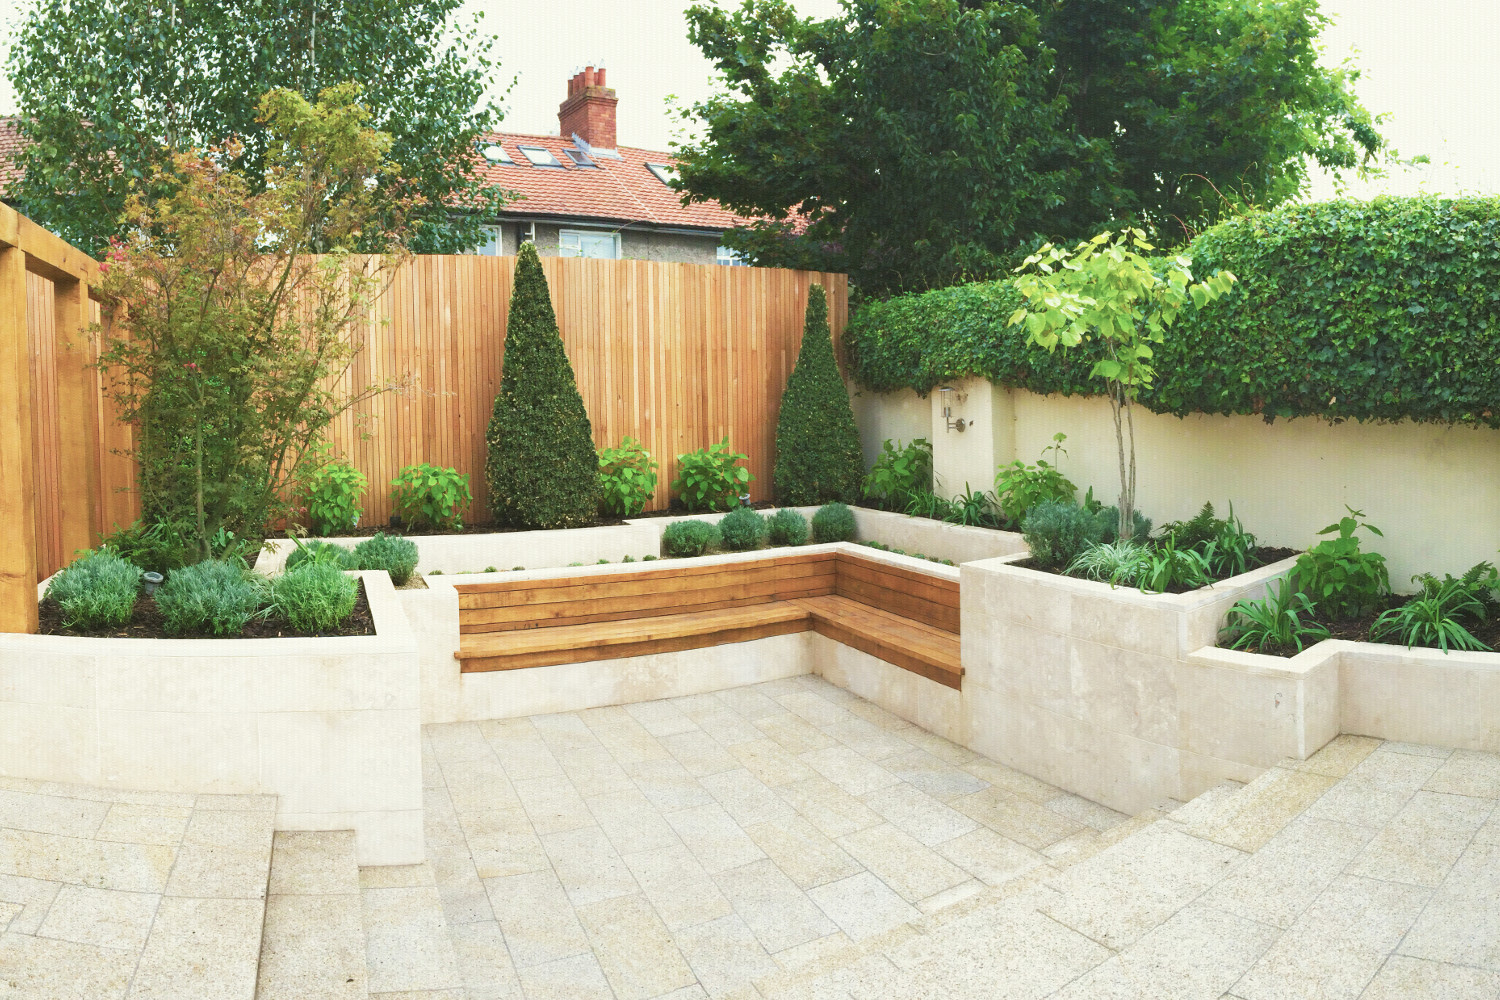 tim-austen-garden-design-stylish-sanctuary-glasnevin-2